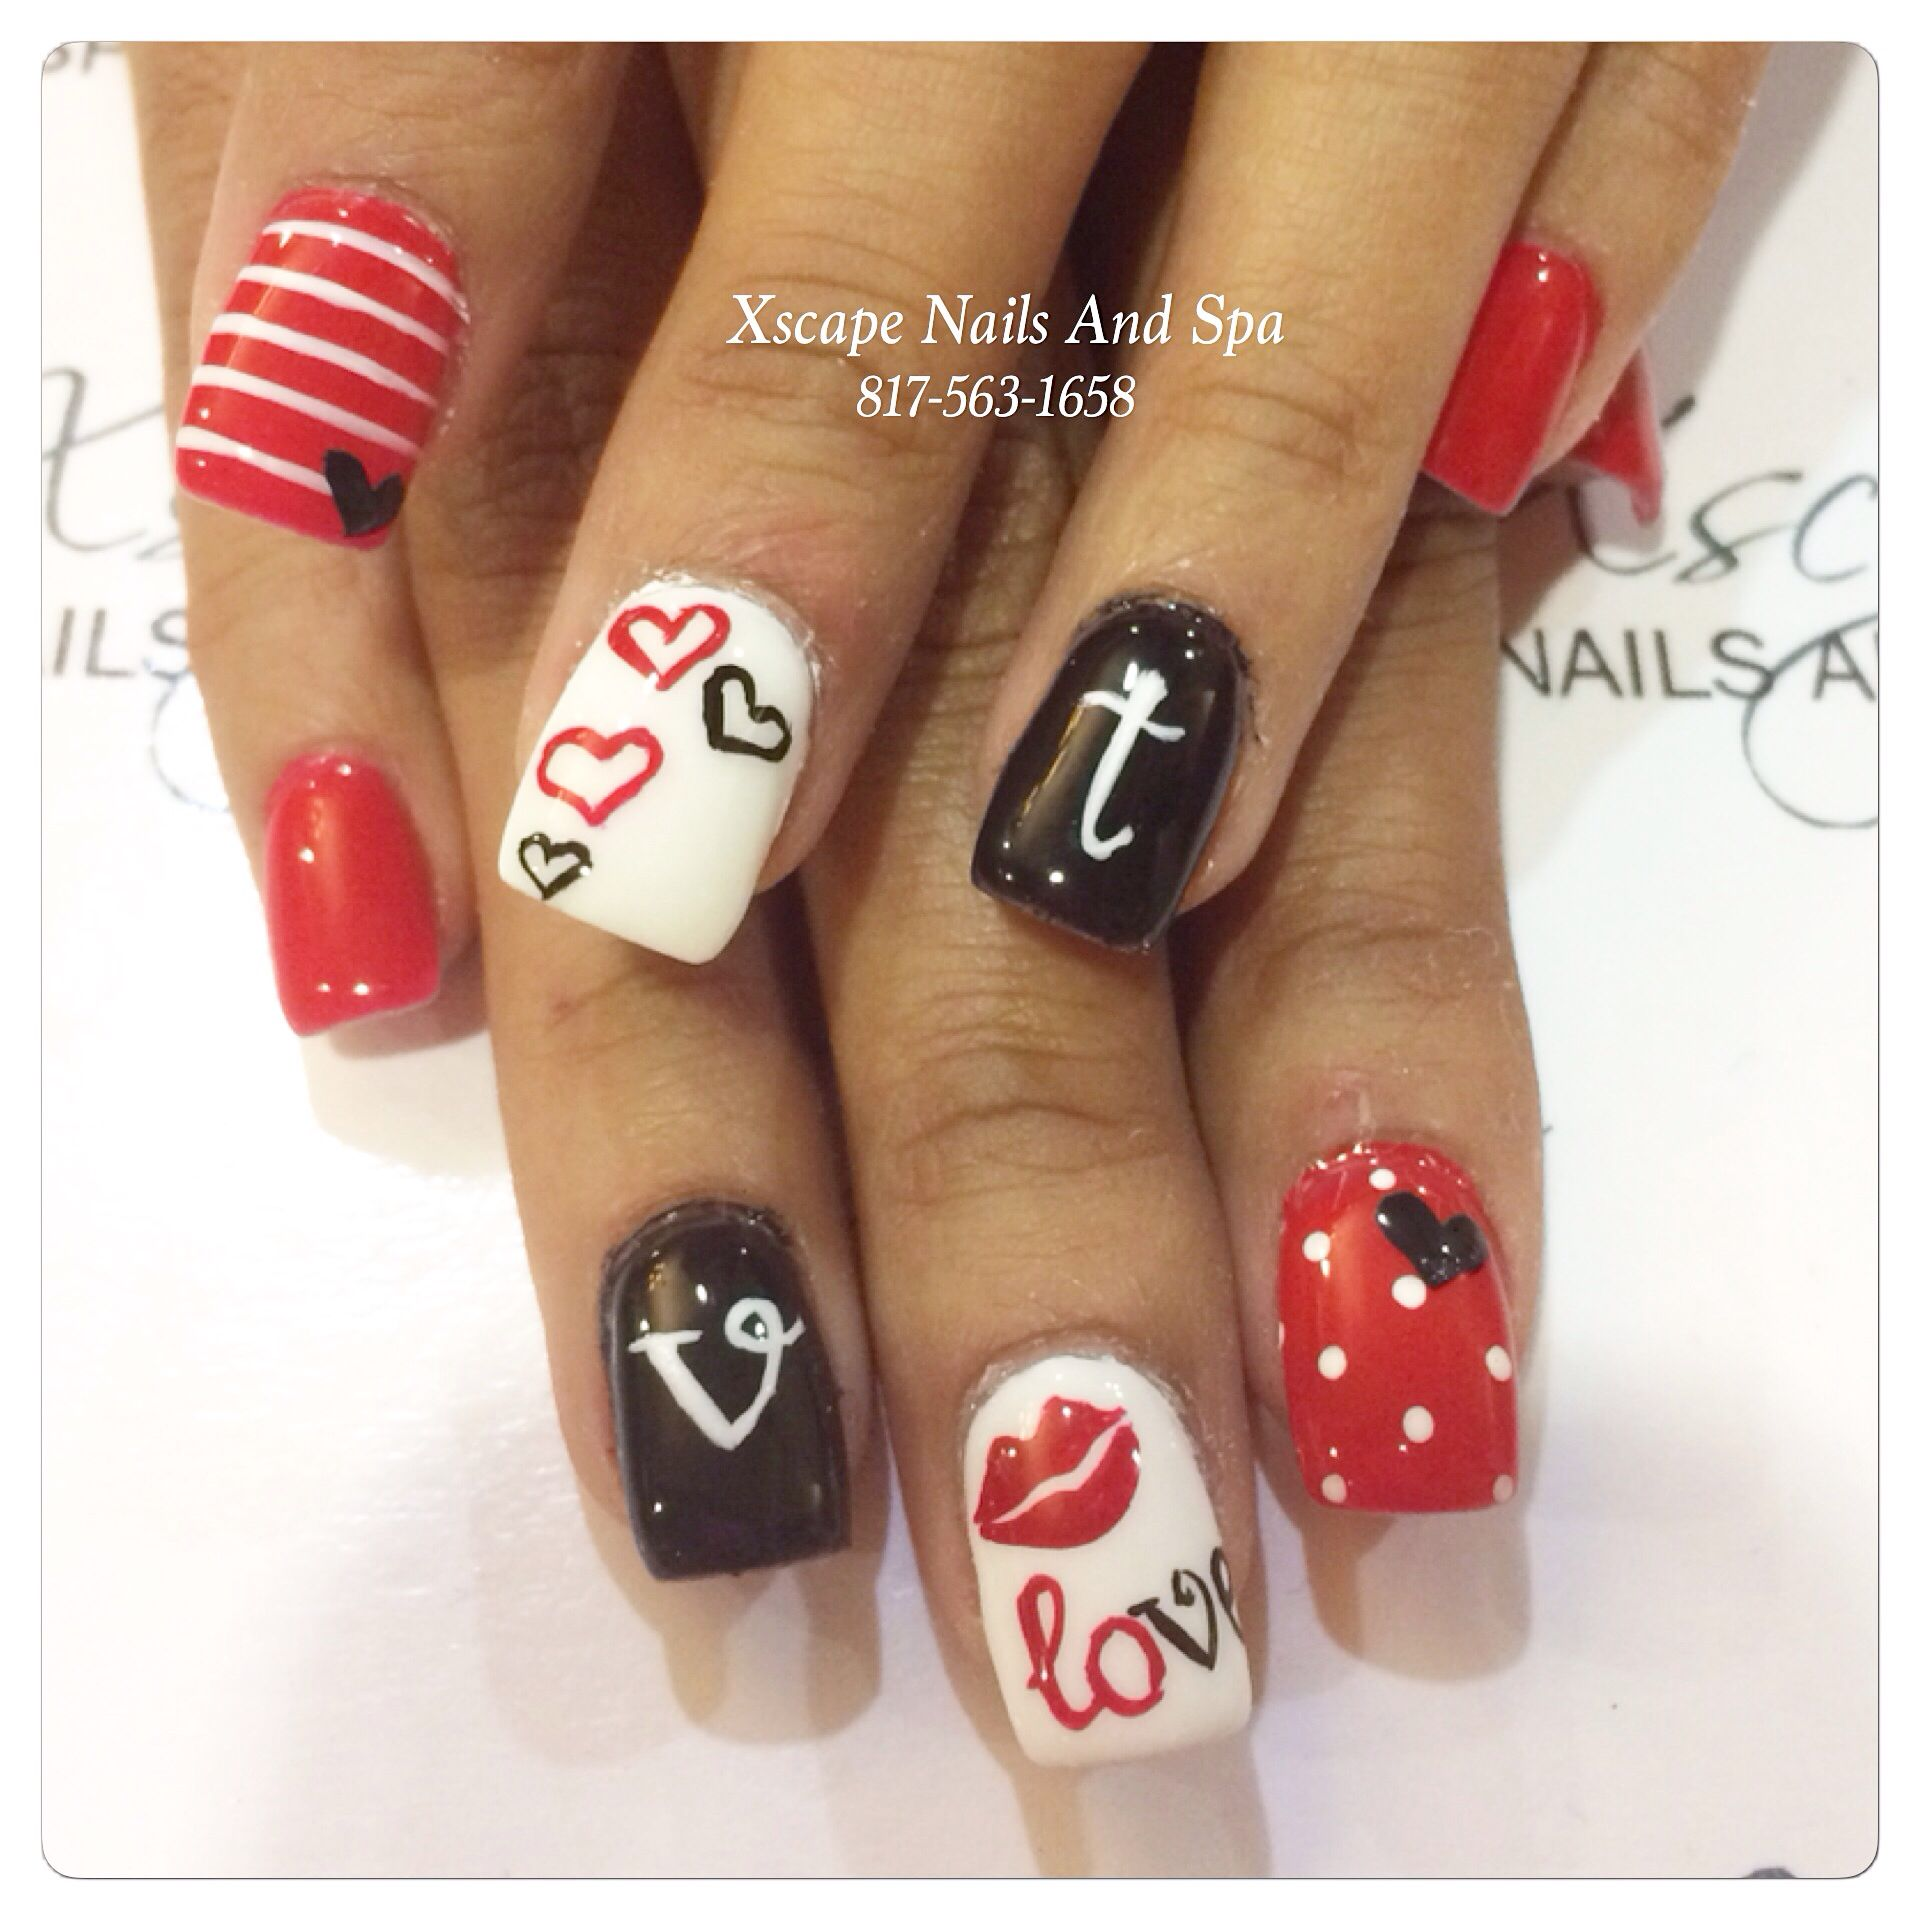 Gel nails/ valentines day nIls/ love nails | Cute Nails Designs ...